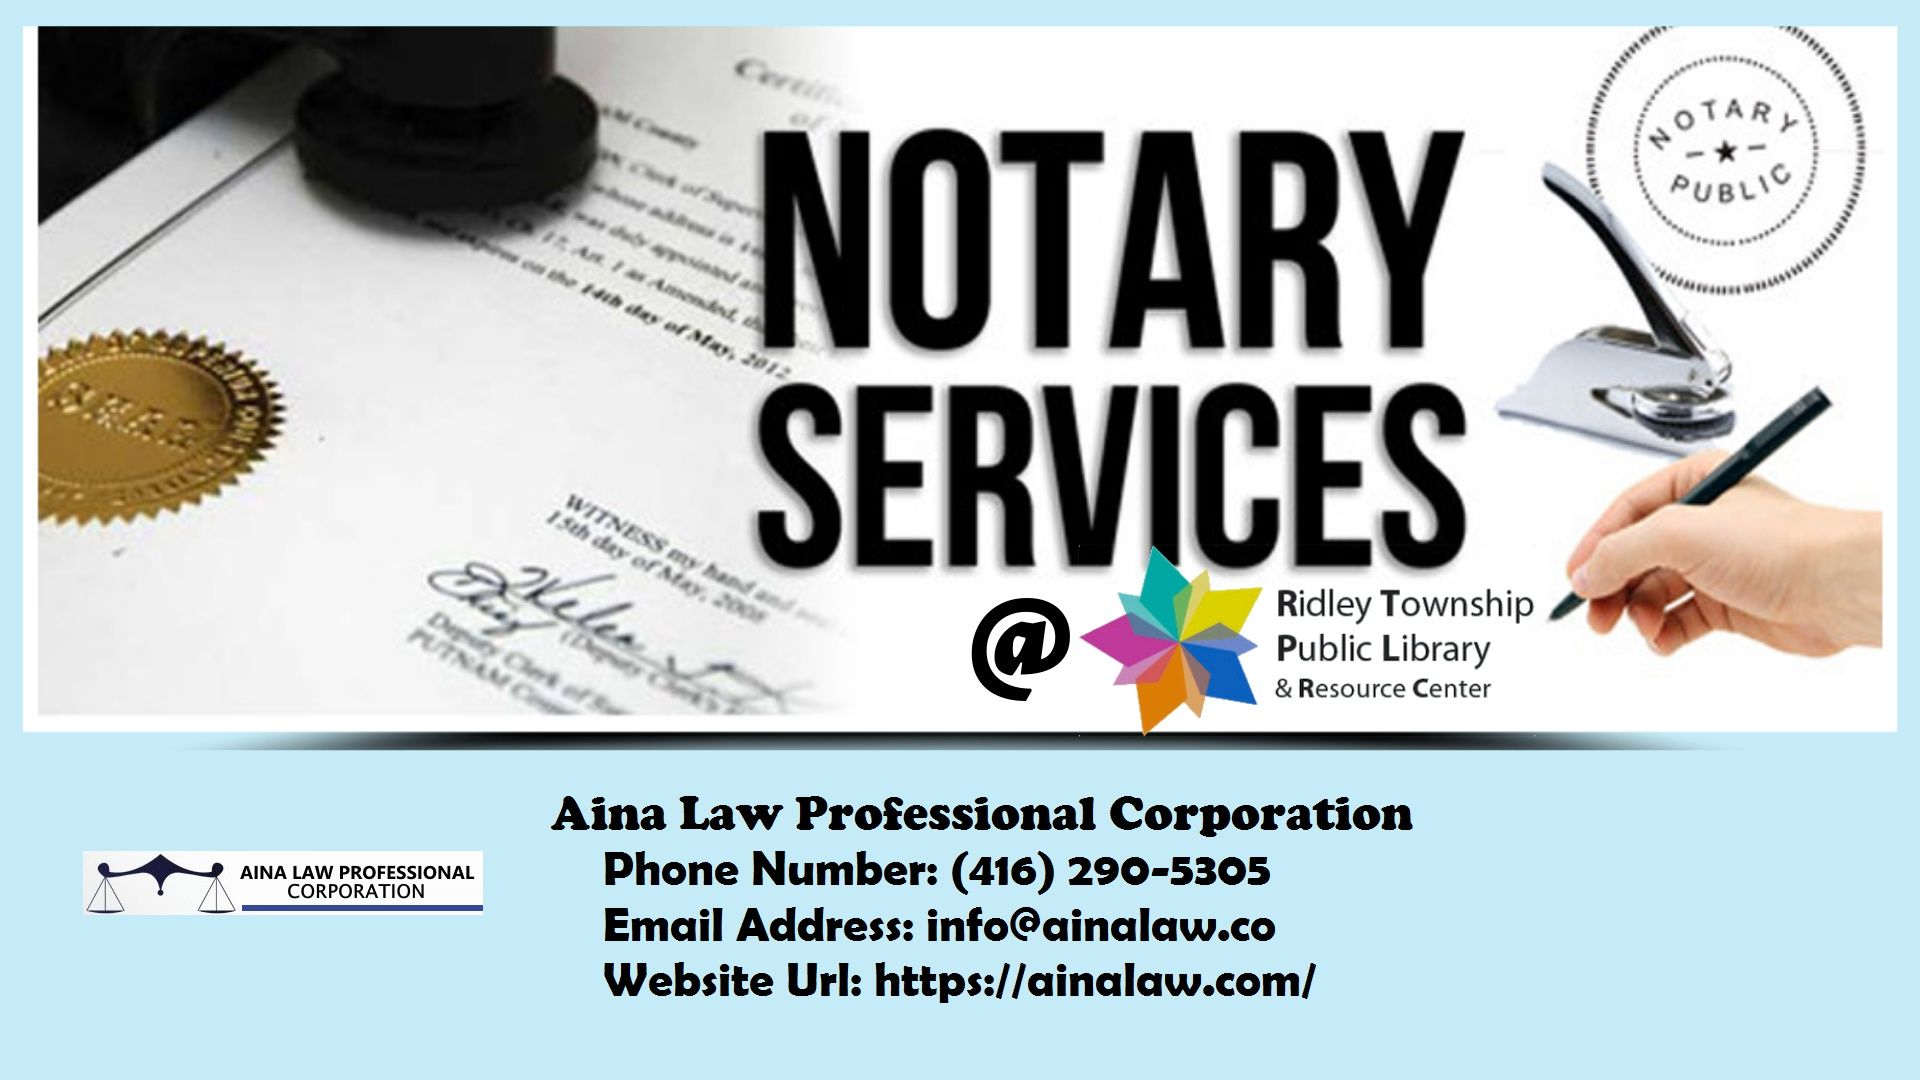 Aina Law Professsional Corporation Is Committed To Complying With